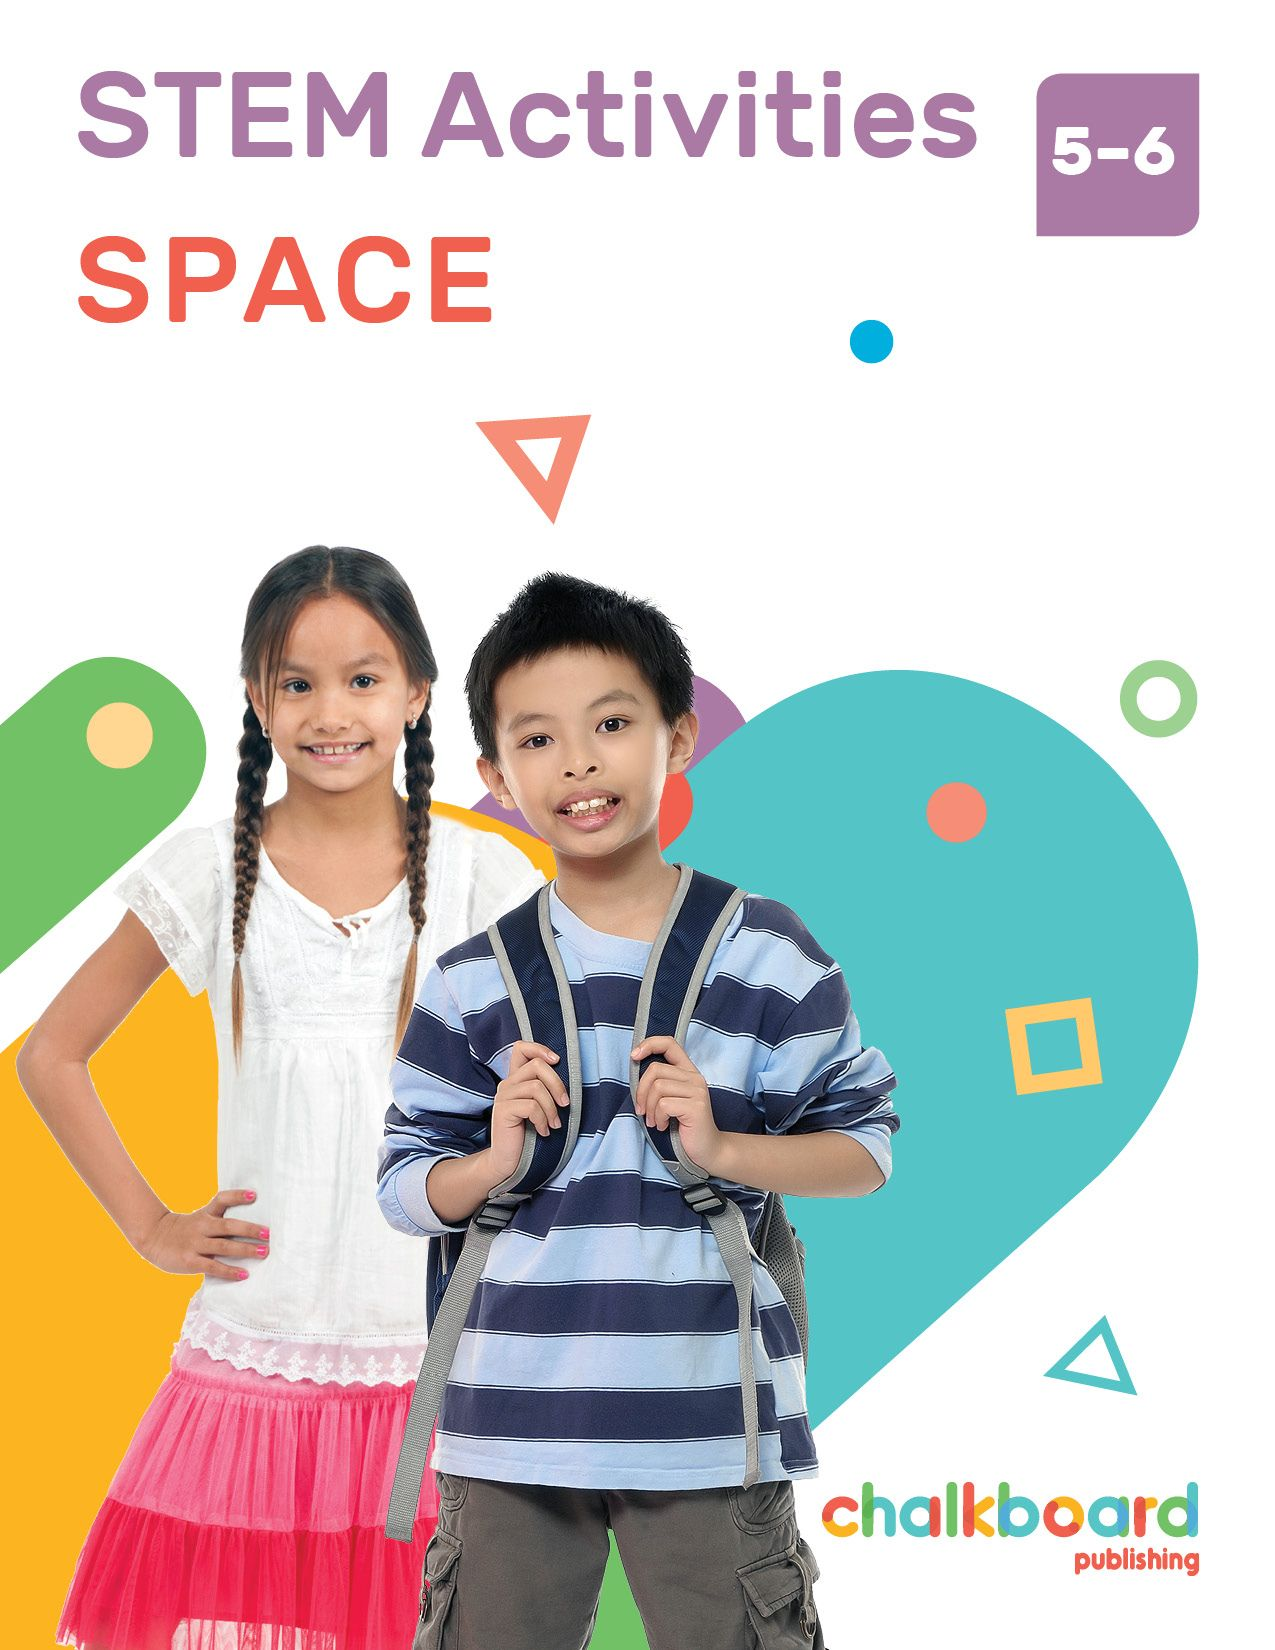 STEM Activities, Space, Space Worksheets, Space Activities